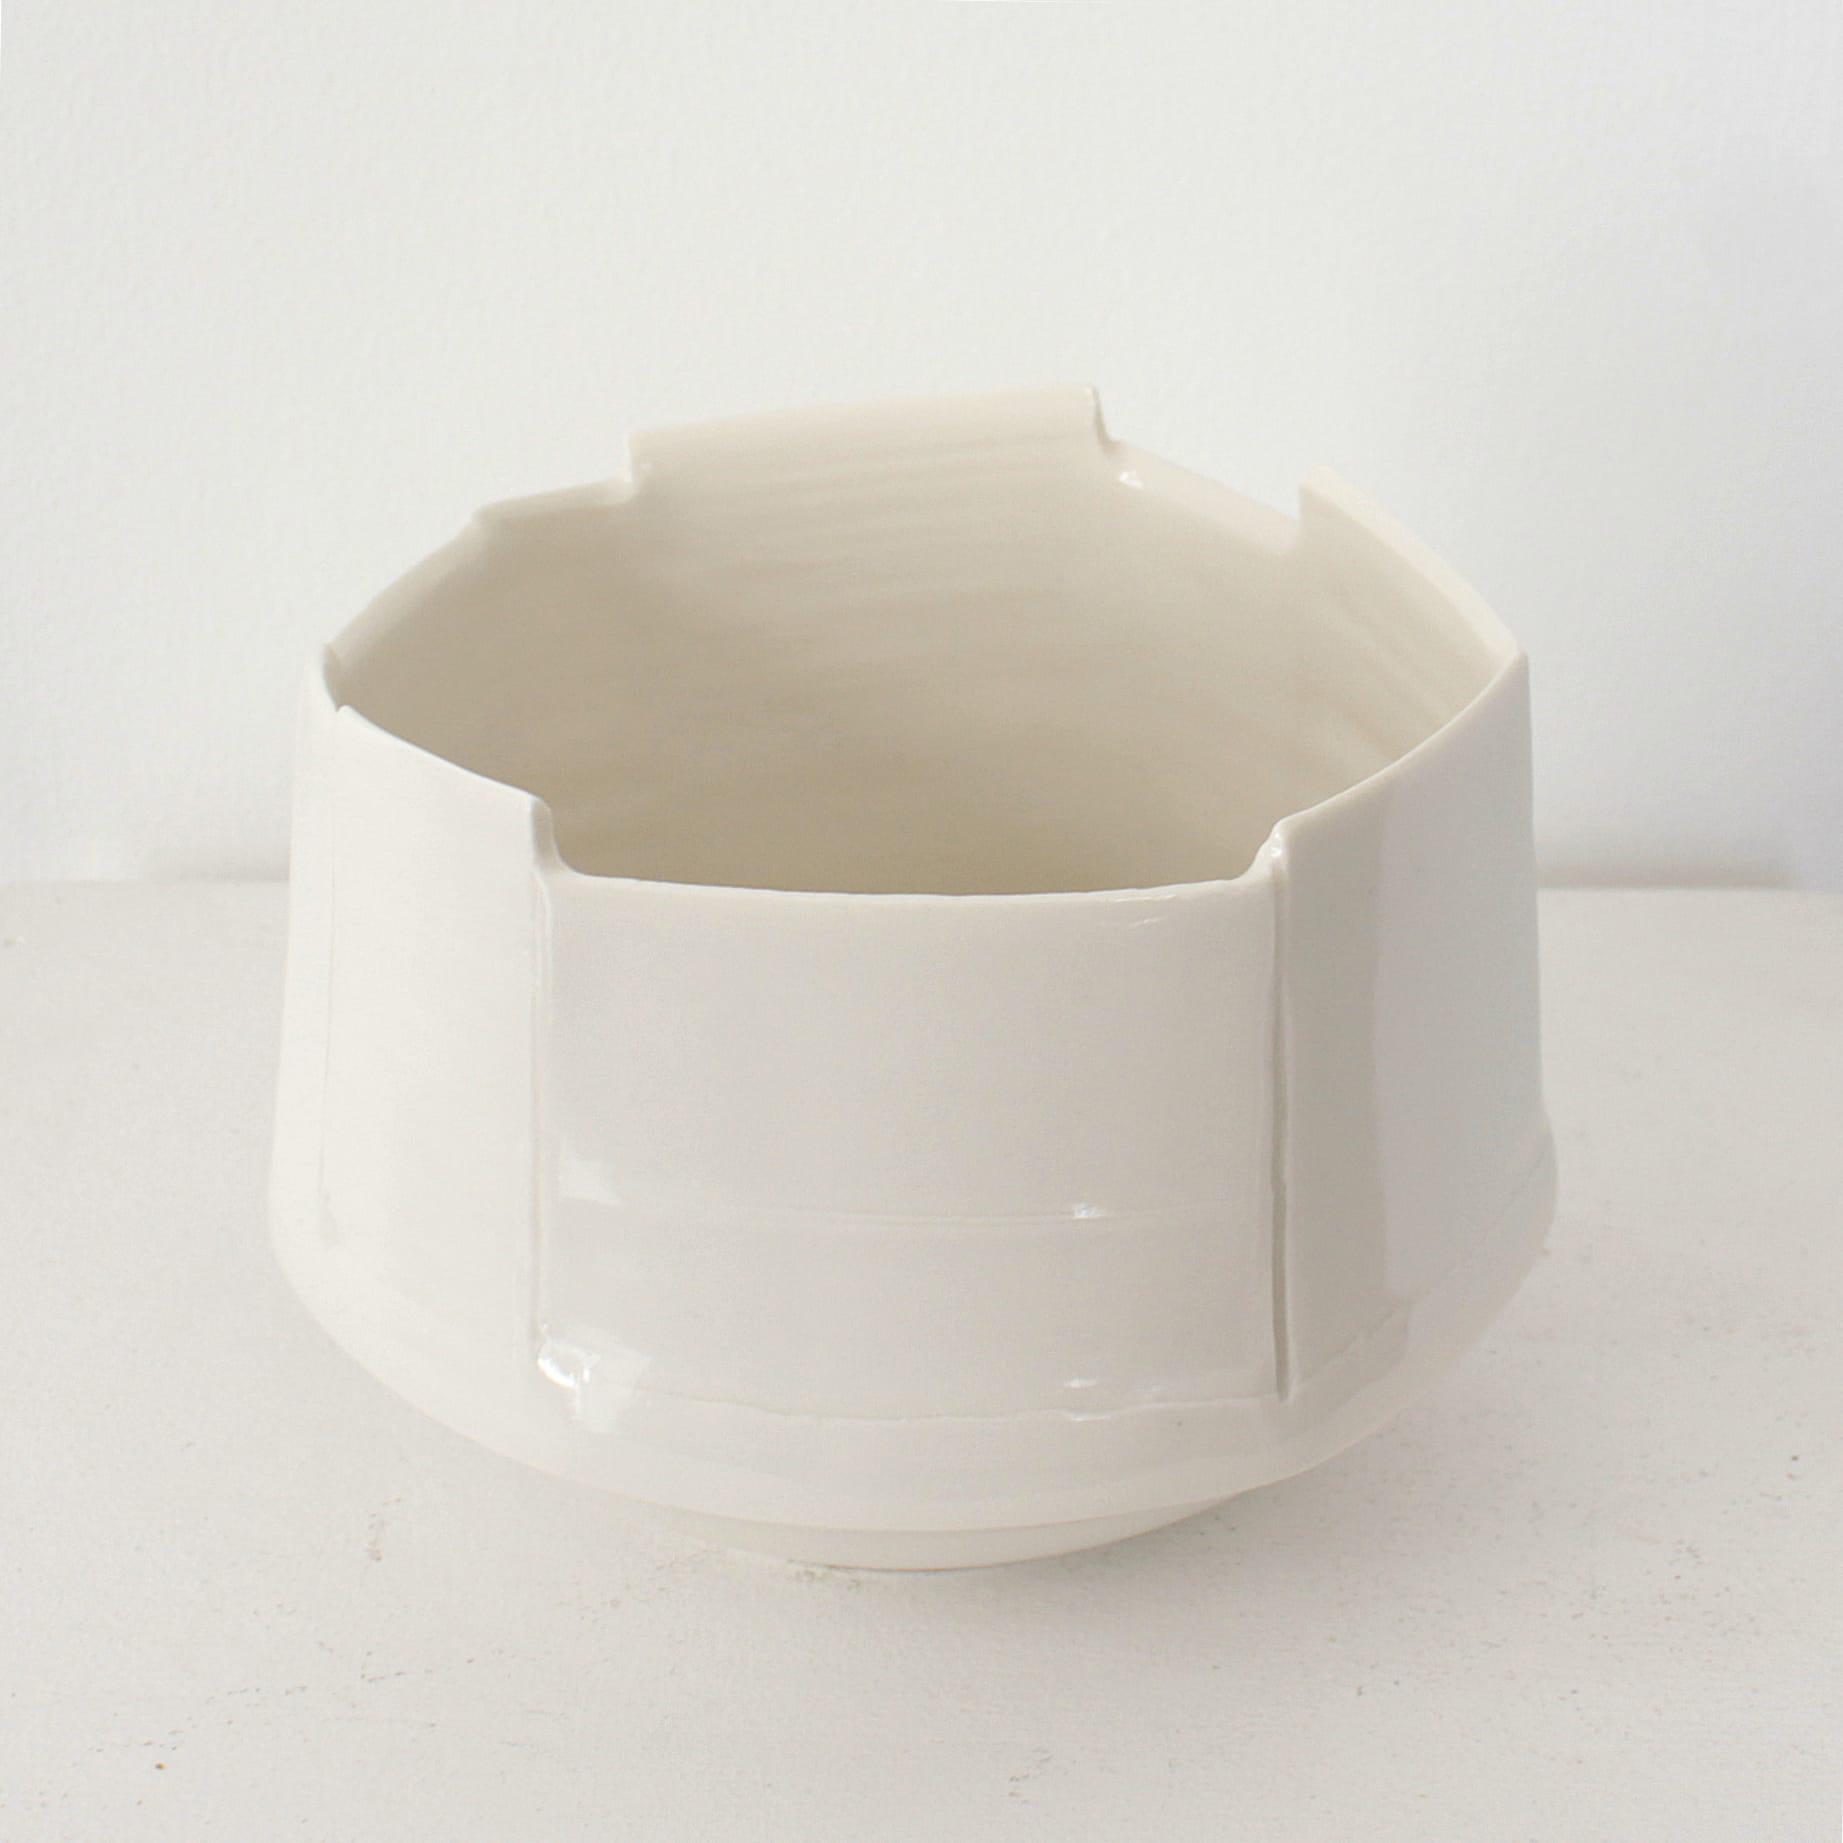 """<span class=""""link fancybox-details-link""""><a href=""""/artists/99-carina-ciscato/works/7884-carina-ciscato-white-large-constructed-bowl-2021/"""">View Detail Page</a></span><div class=""""artist""""><strong>Carina Ciscato</strong></div> <div class=""""title""""><em>White Large Constructed Bowl</em>, 2021</div> <div class=""""signed_and_dated"""">artist stamp</div> <div class=""""medium"""">porcelain</div> <div class=""""dimensions"""">11 x 15 x 13 cm</div><div class=""""price"""">£605.00</div><div class=""""copyright_line"""">Own Art: £60.50 x 10 Months, 0% APR</div>"""